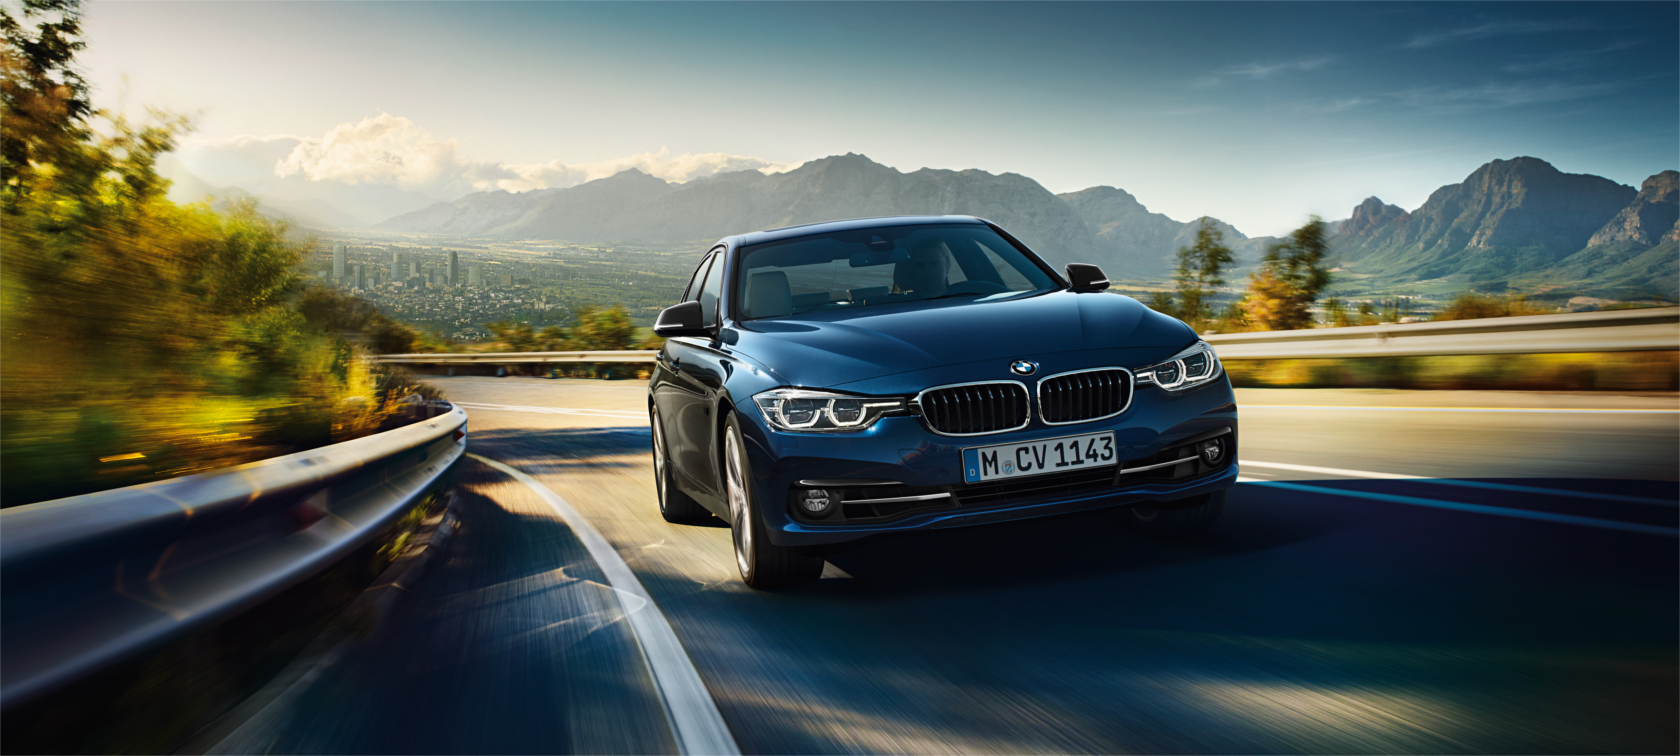 The driving dynamics of the BMW 3 Series